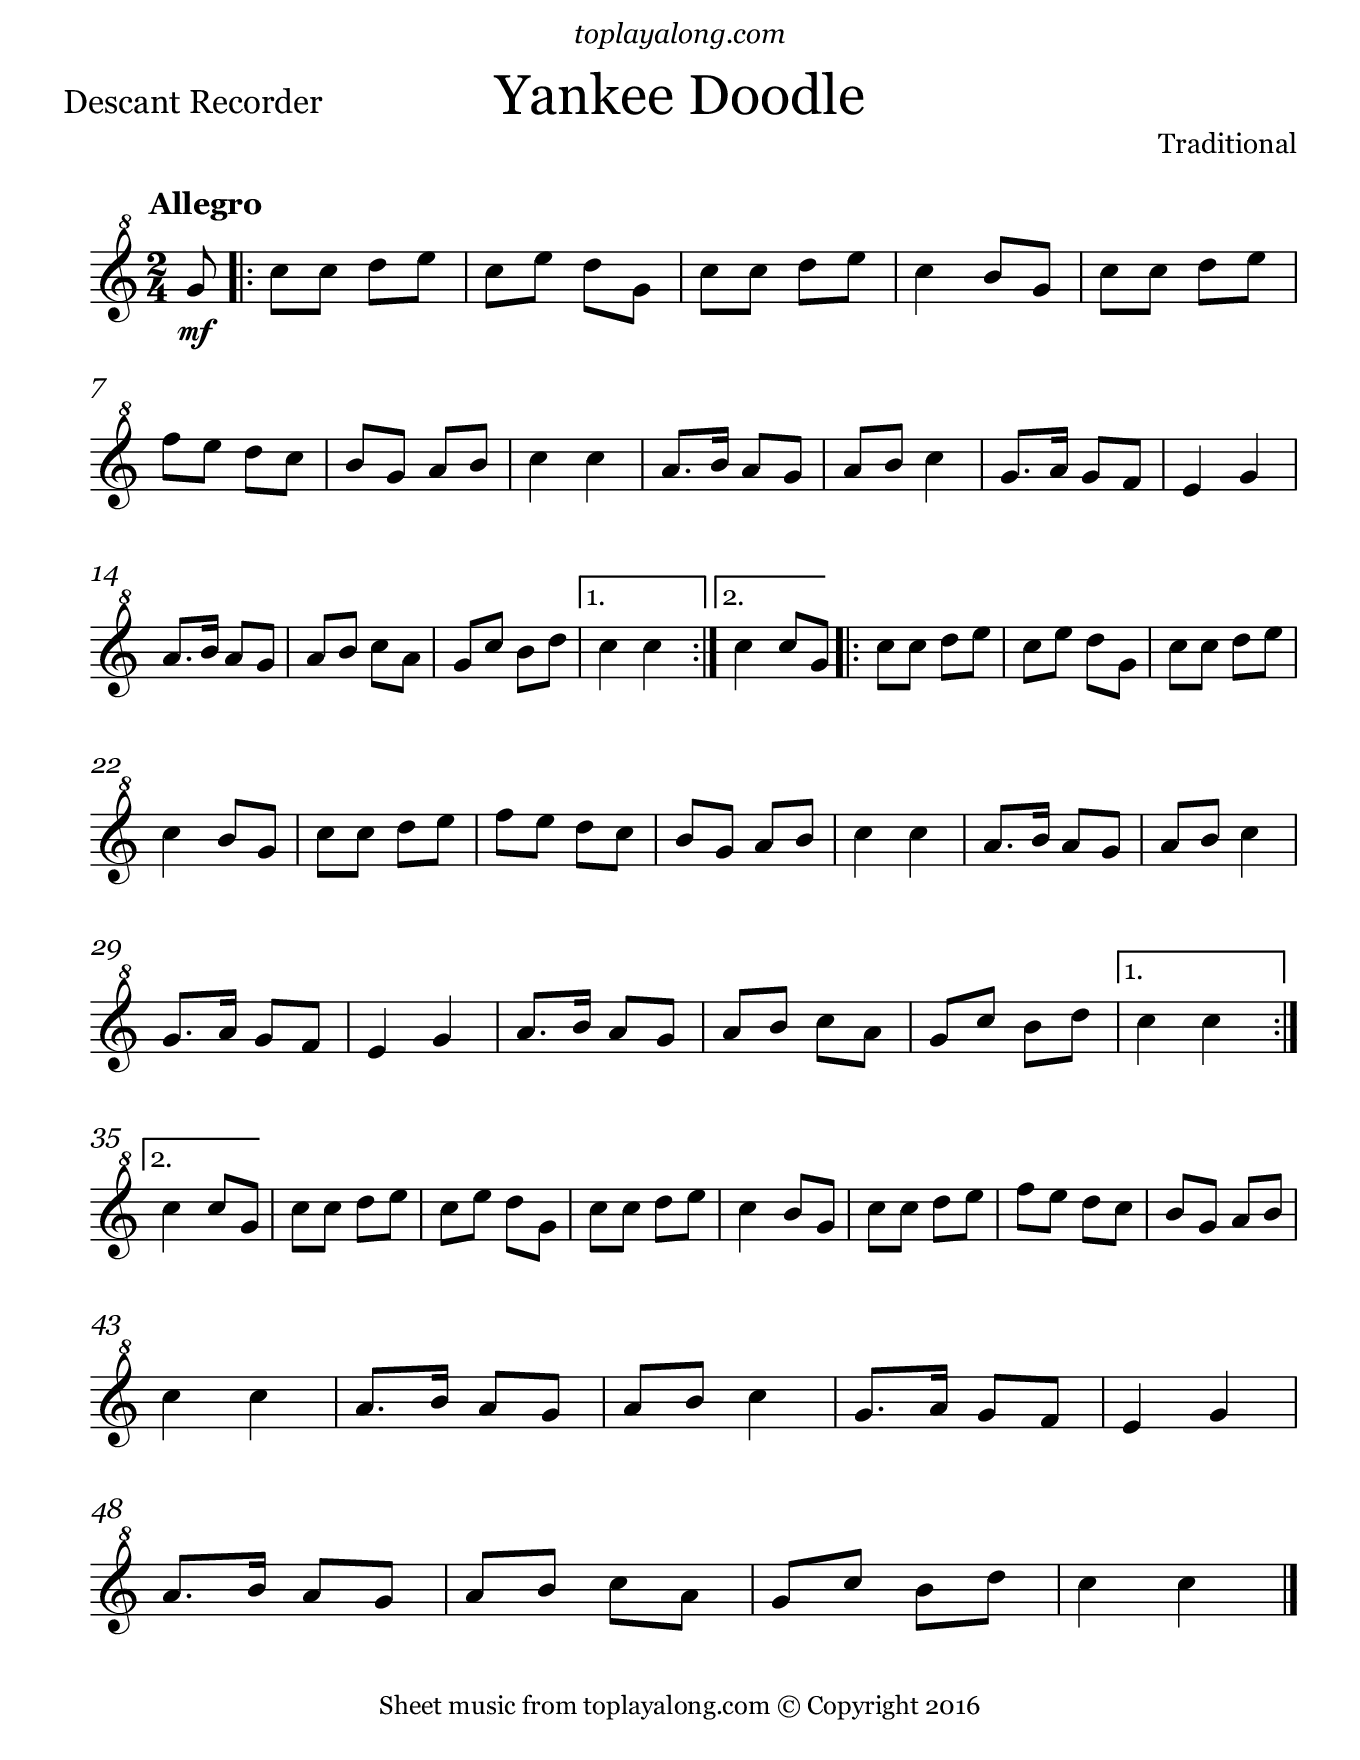 Yankee Doodle. Sheet music for Recorder, page 1.